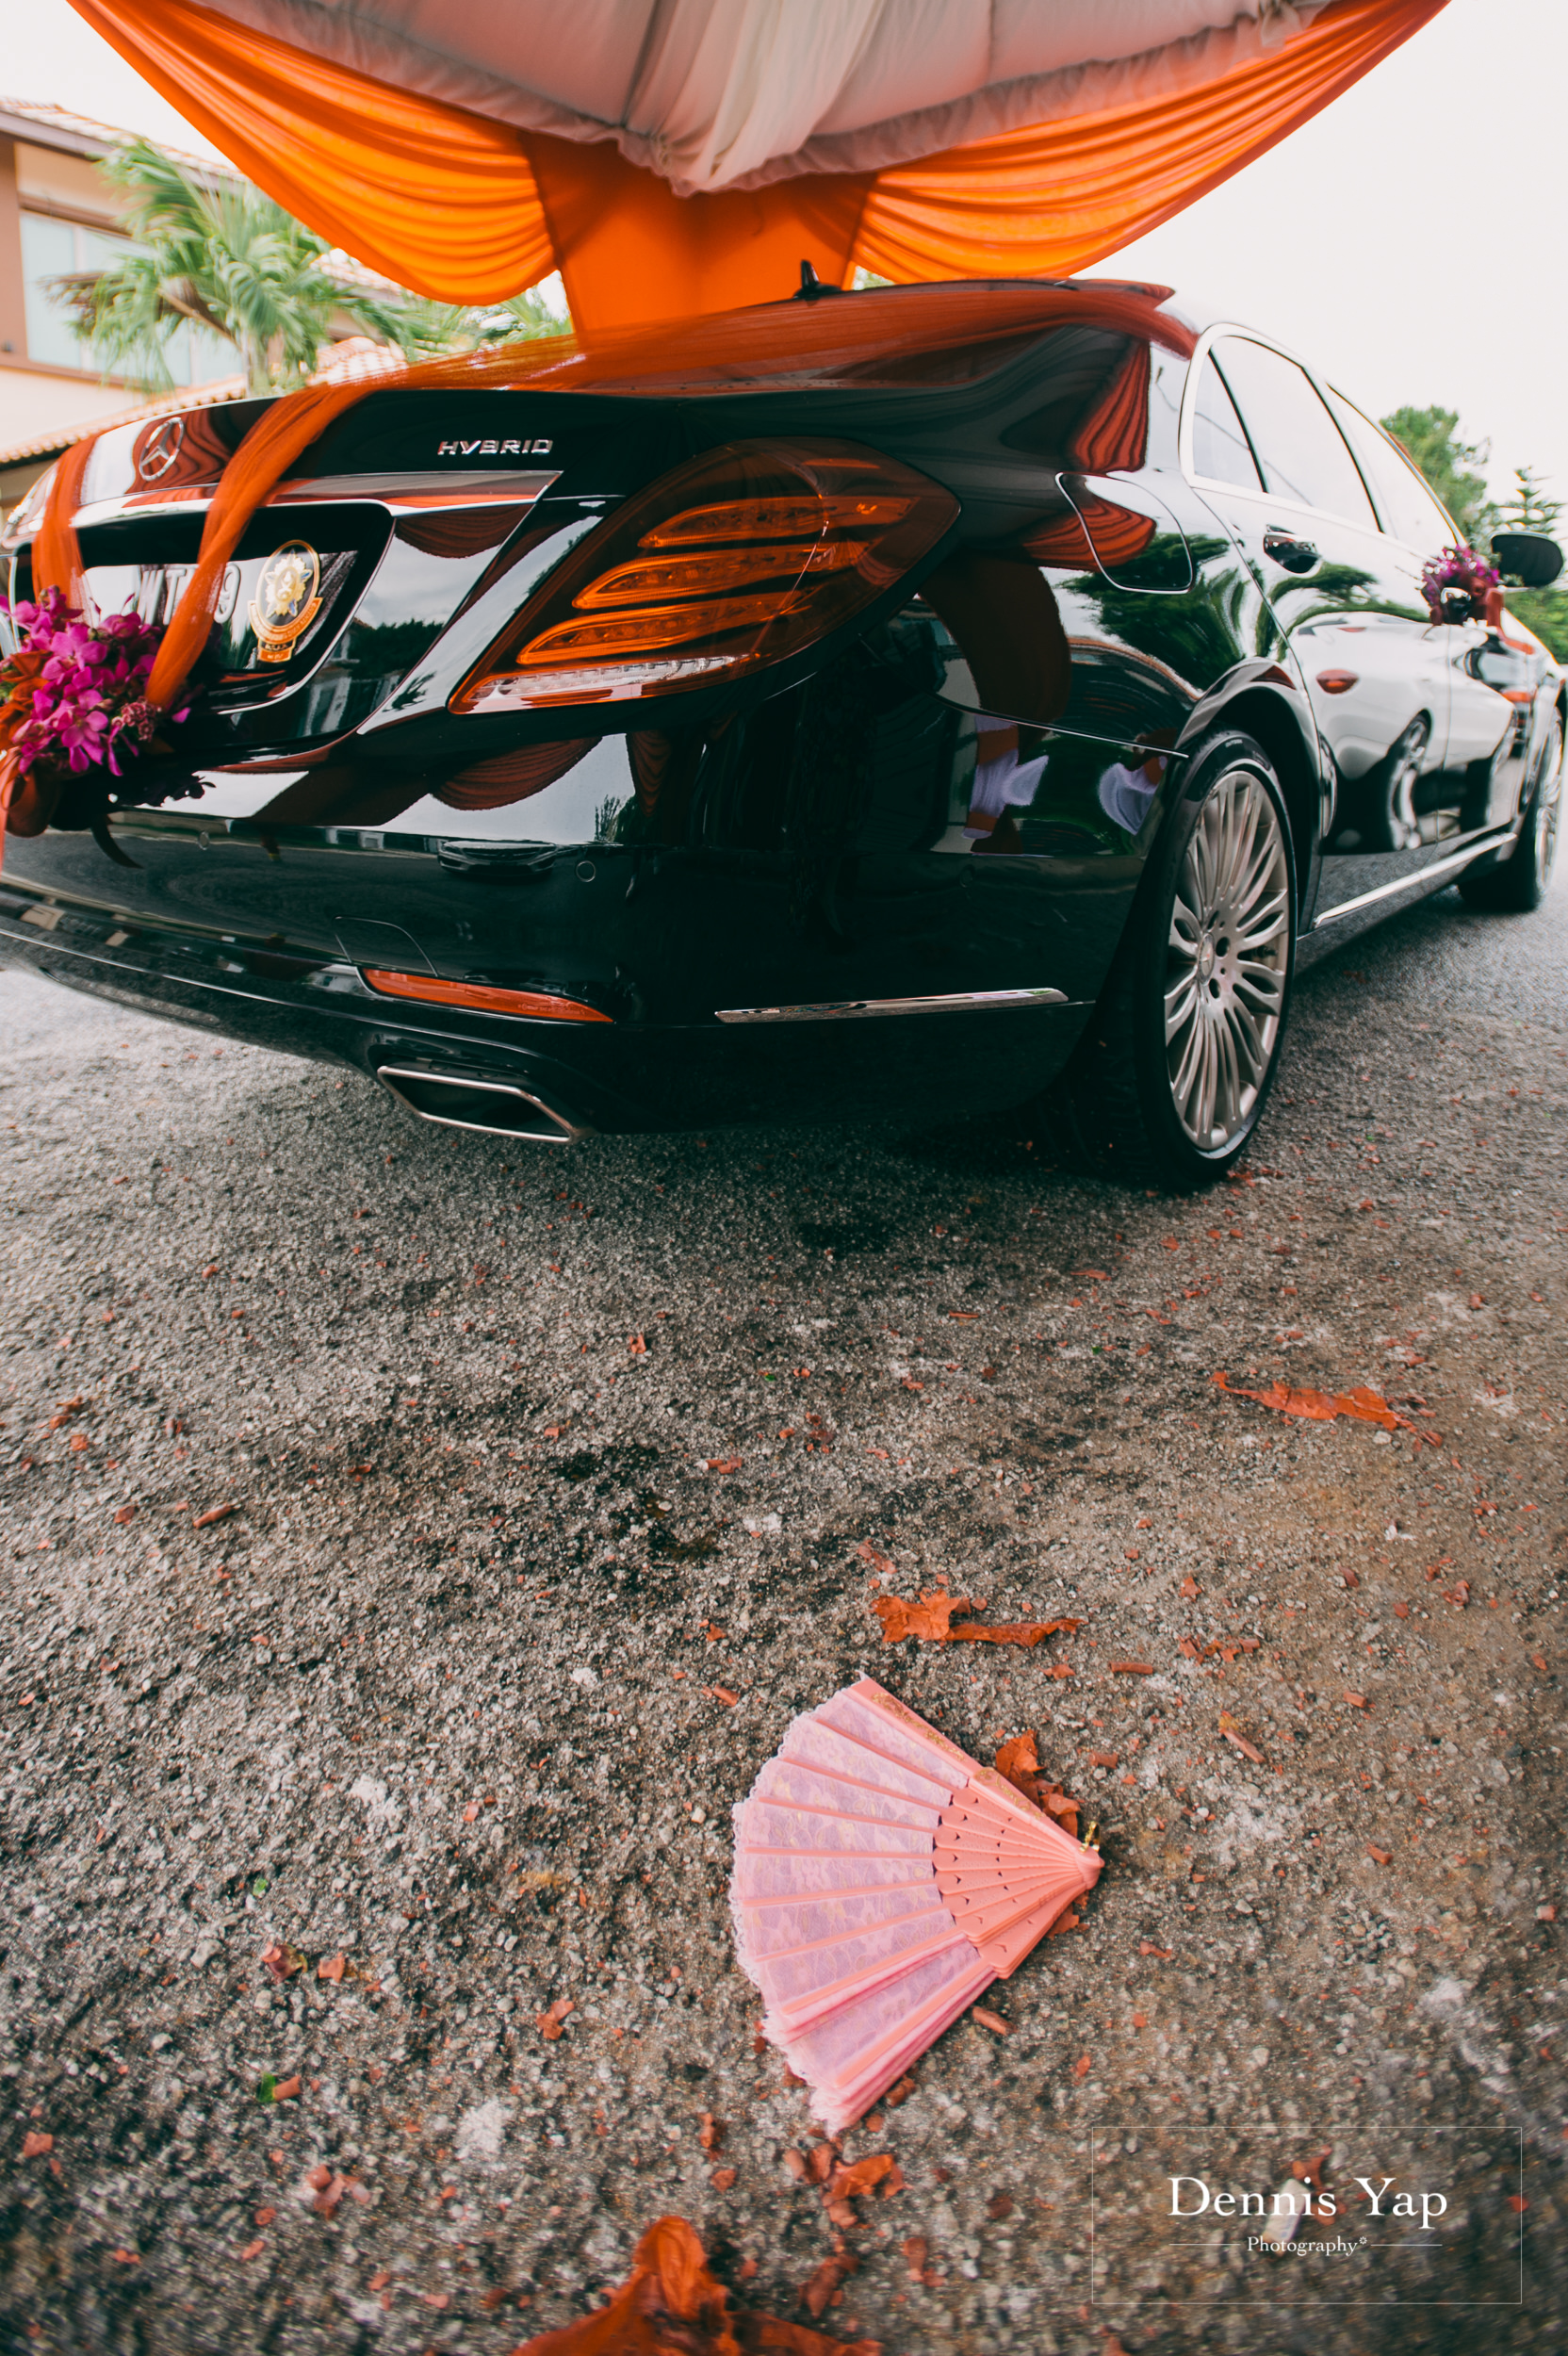 johnson joanne wedding gate crash malaysia wedding photographer dennis yap botanic klang-22.jpg